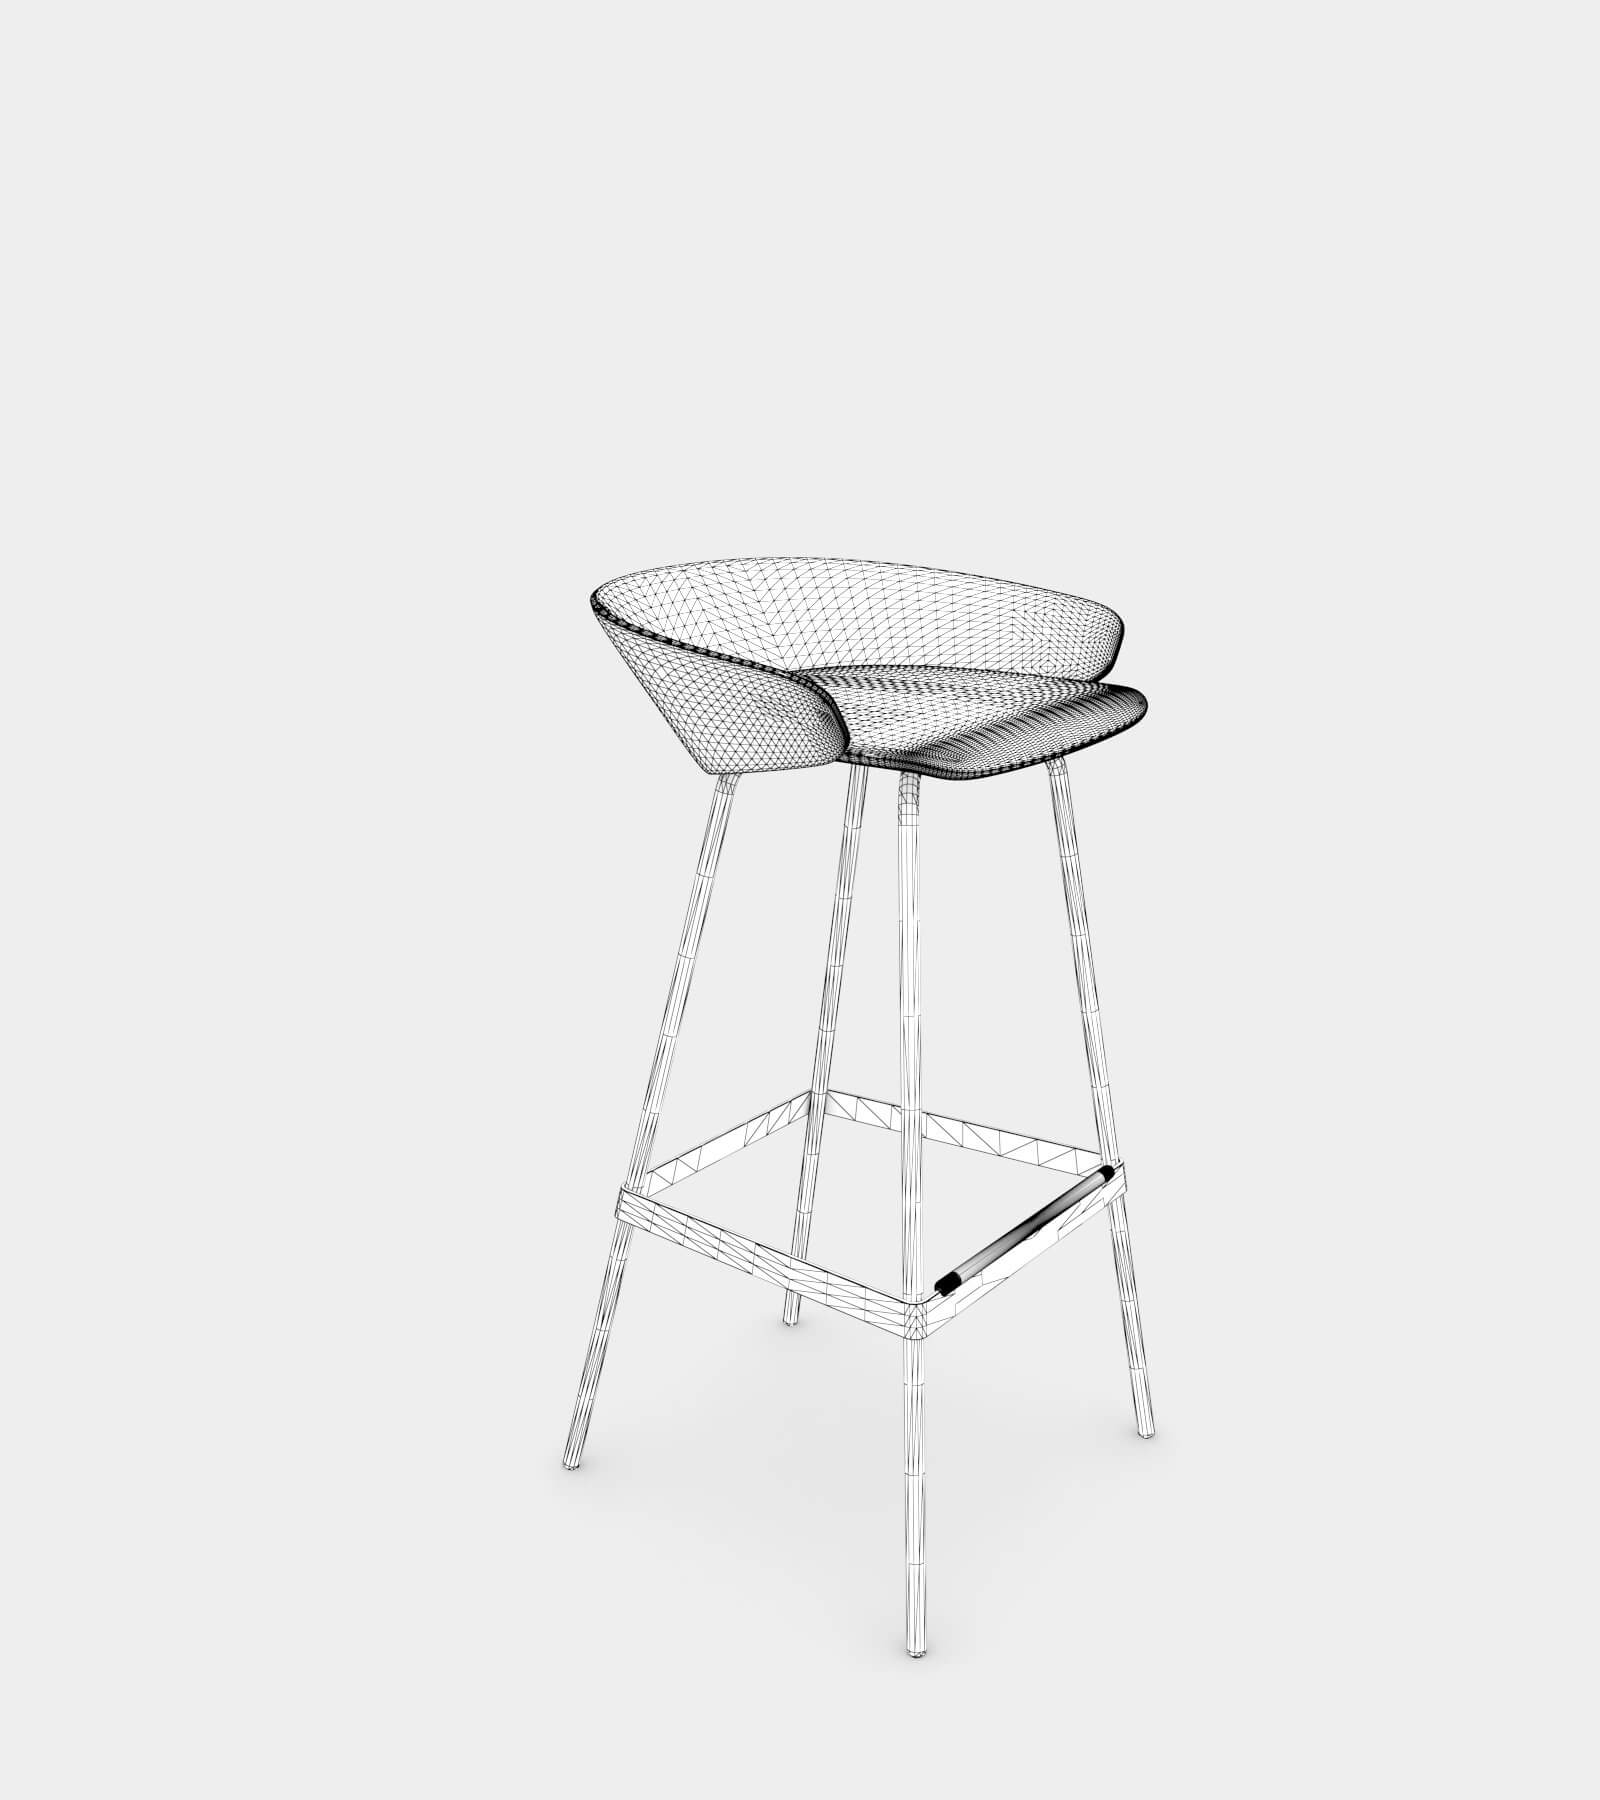 Fabric stool with armrest-wire-2 3D Model